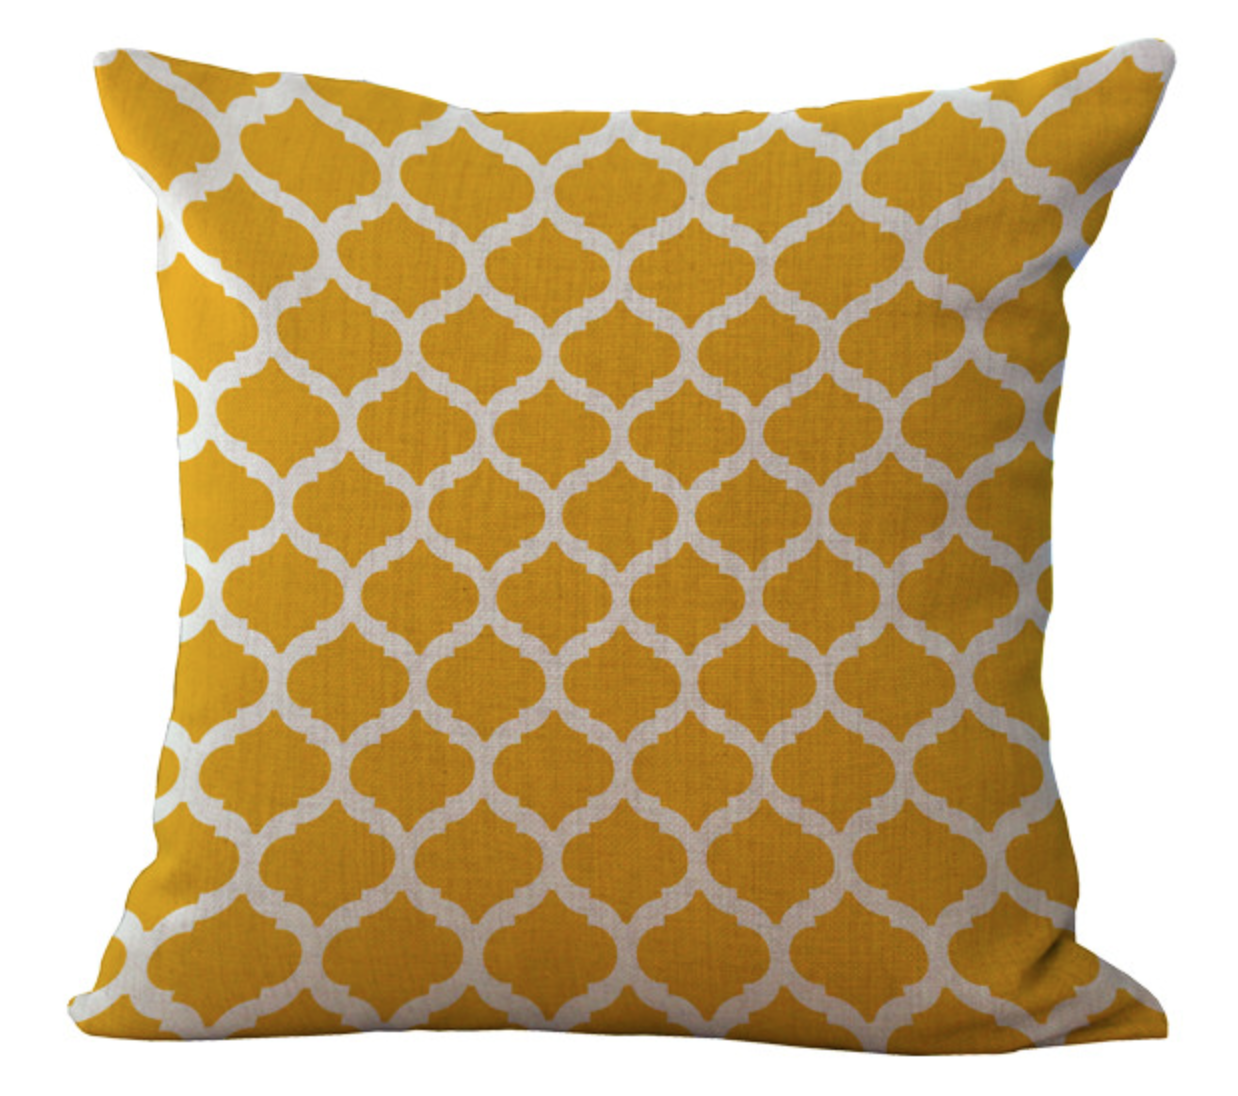 Saffron Pillow - Pillow HD PNG